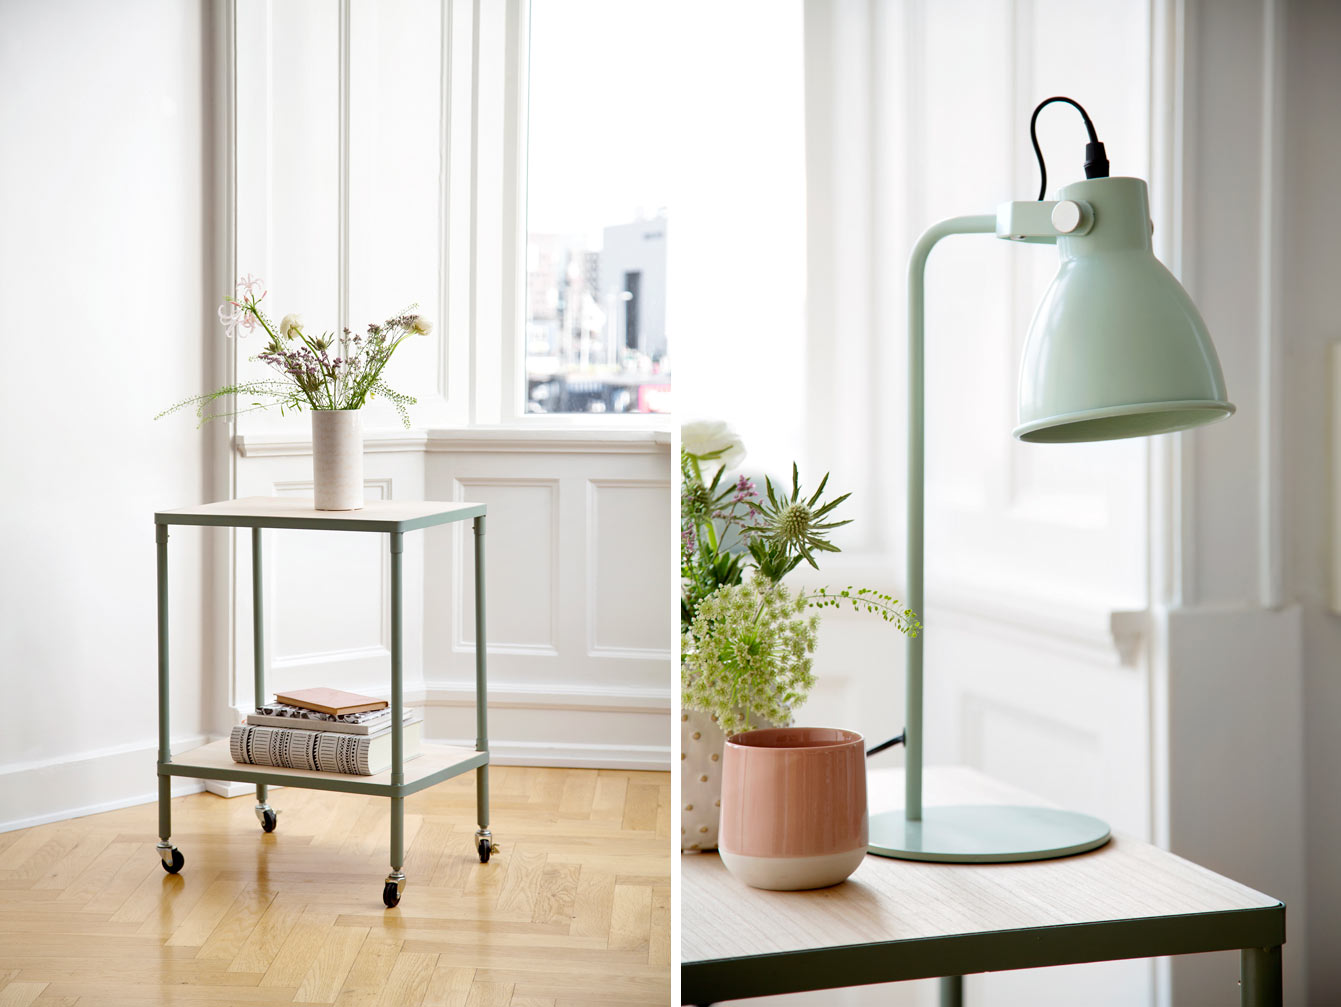 sostrene-grene-printemps-paris-06